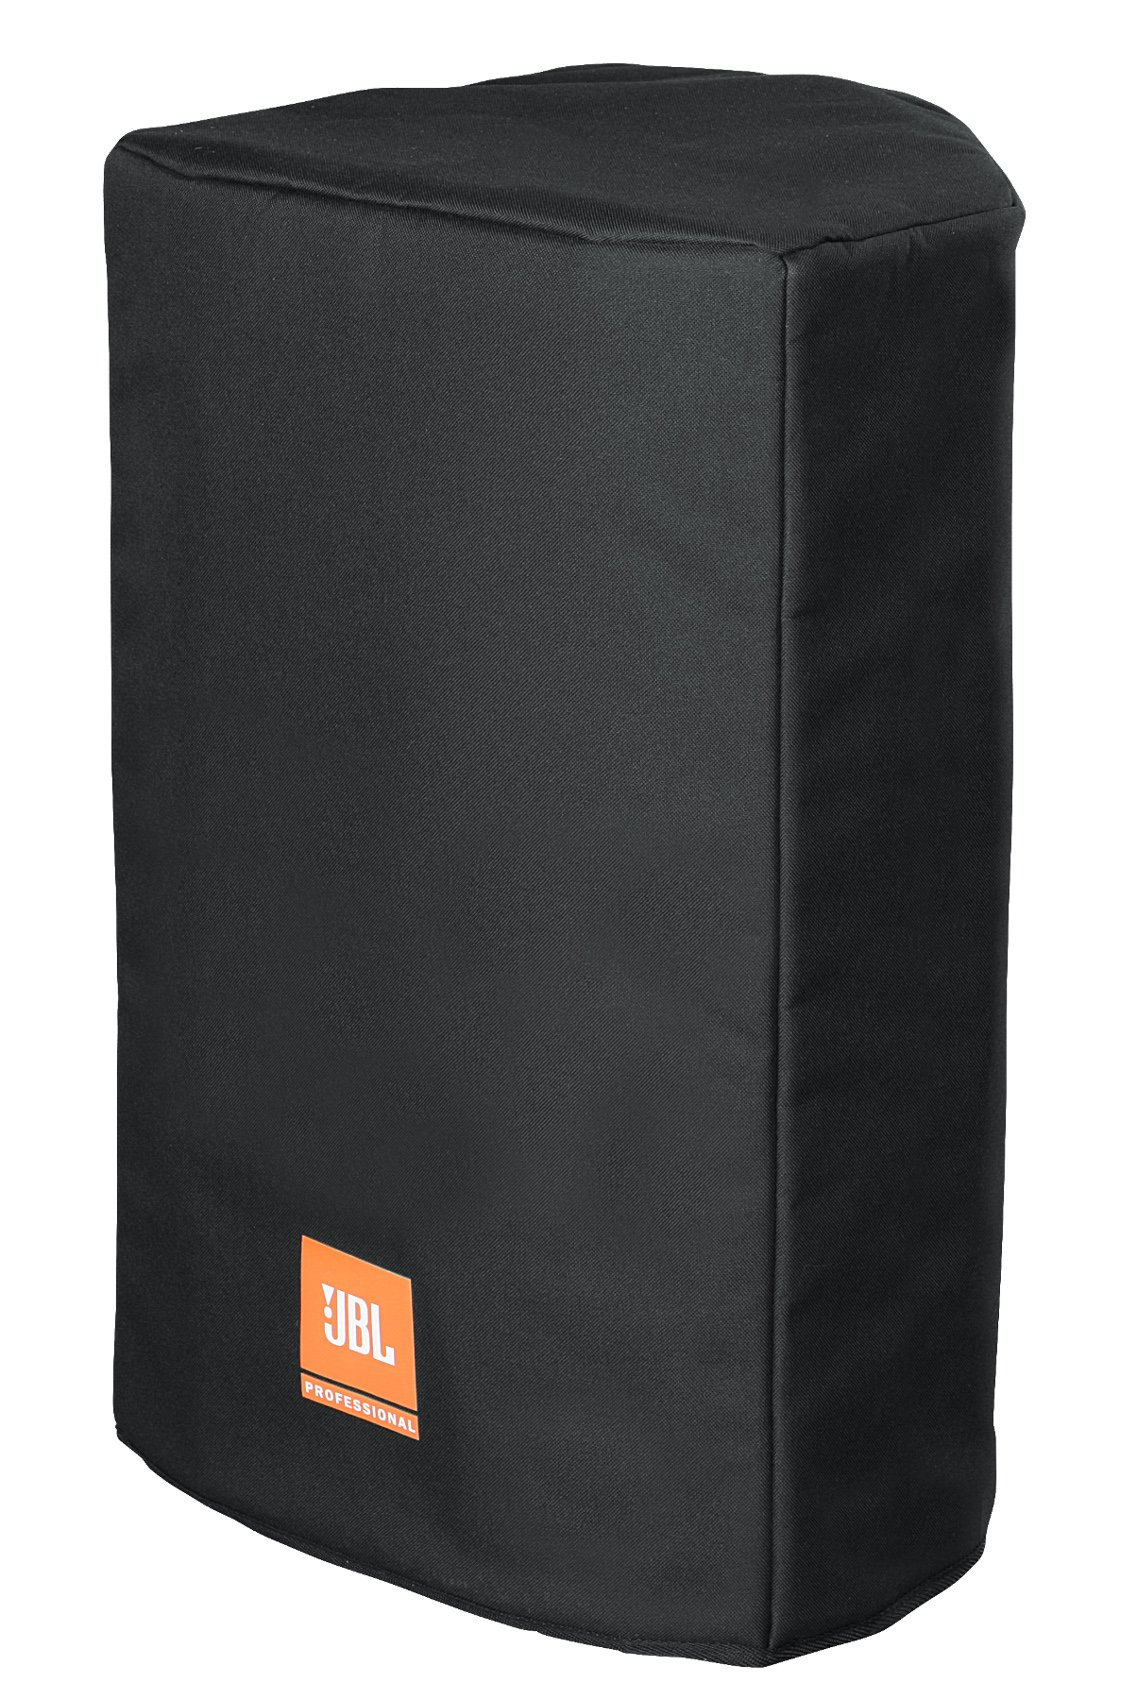 JBL PRX Series Free Transport Bag Mail-In Offer